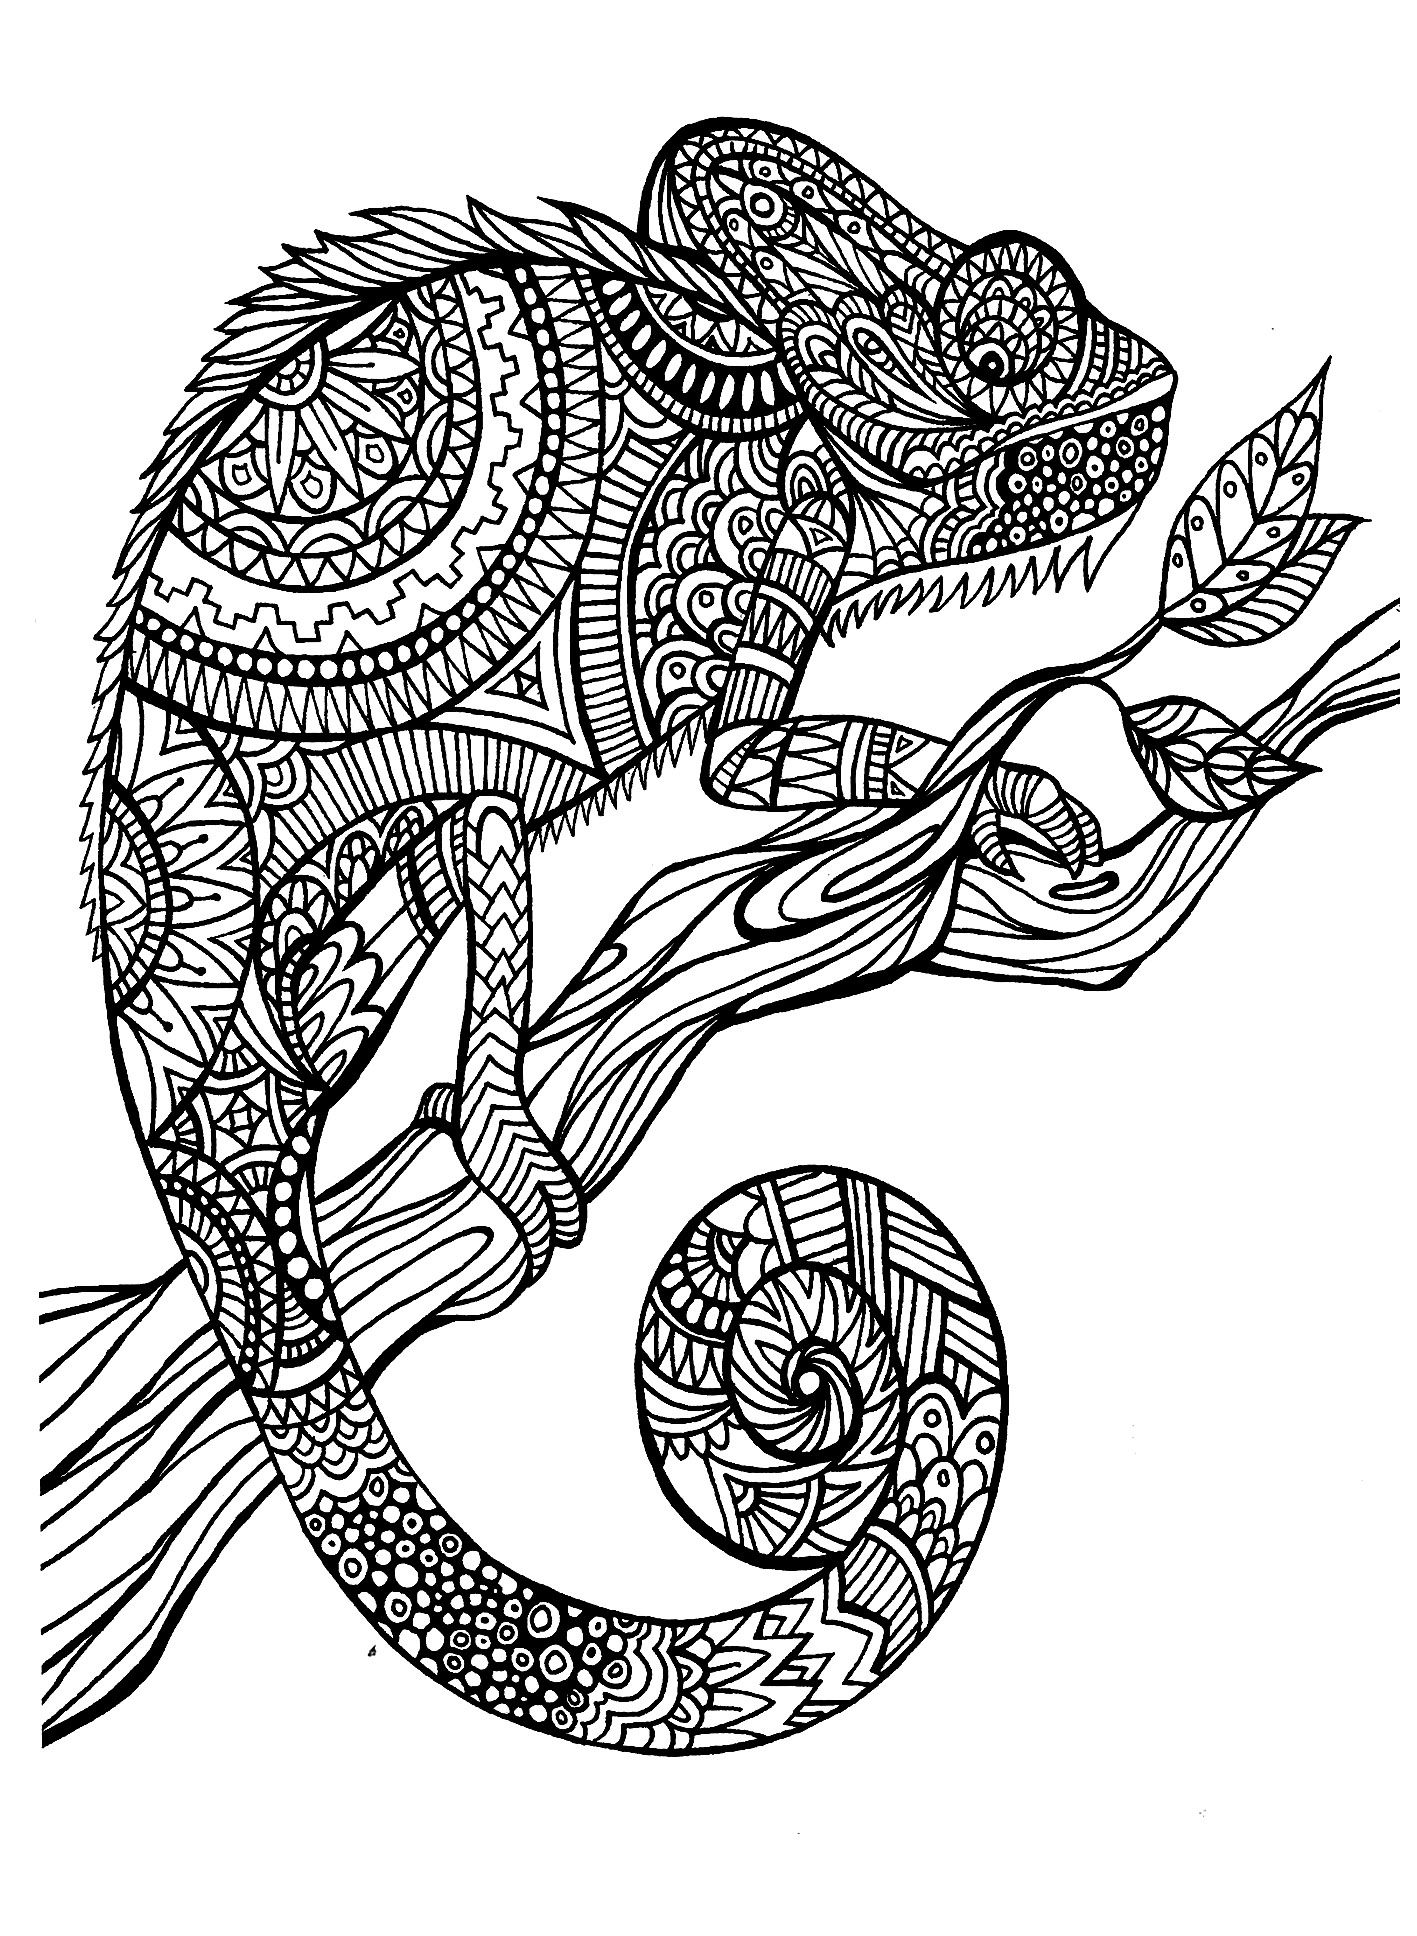 free coloring page coloring adult cameleon patterns a magnificien cameleon to color - Coloring Pages Animals